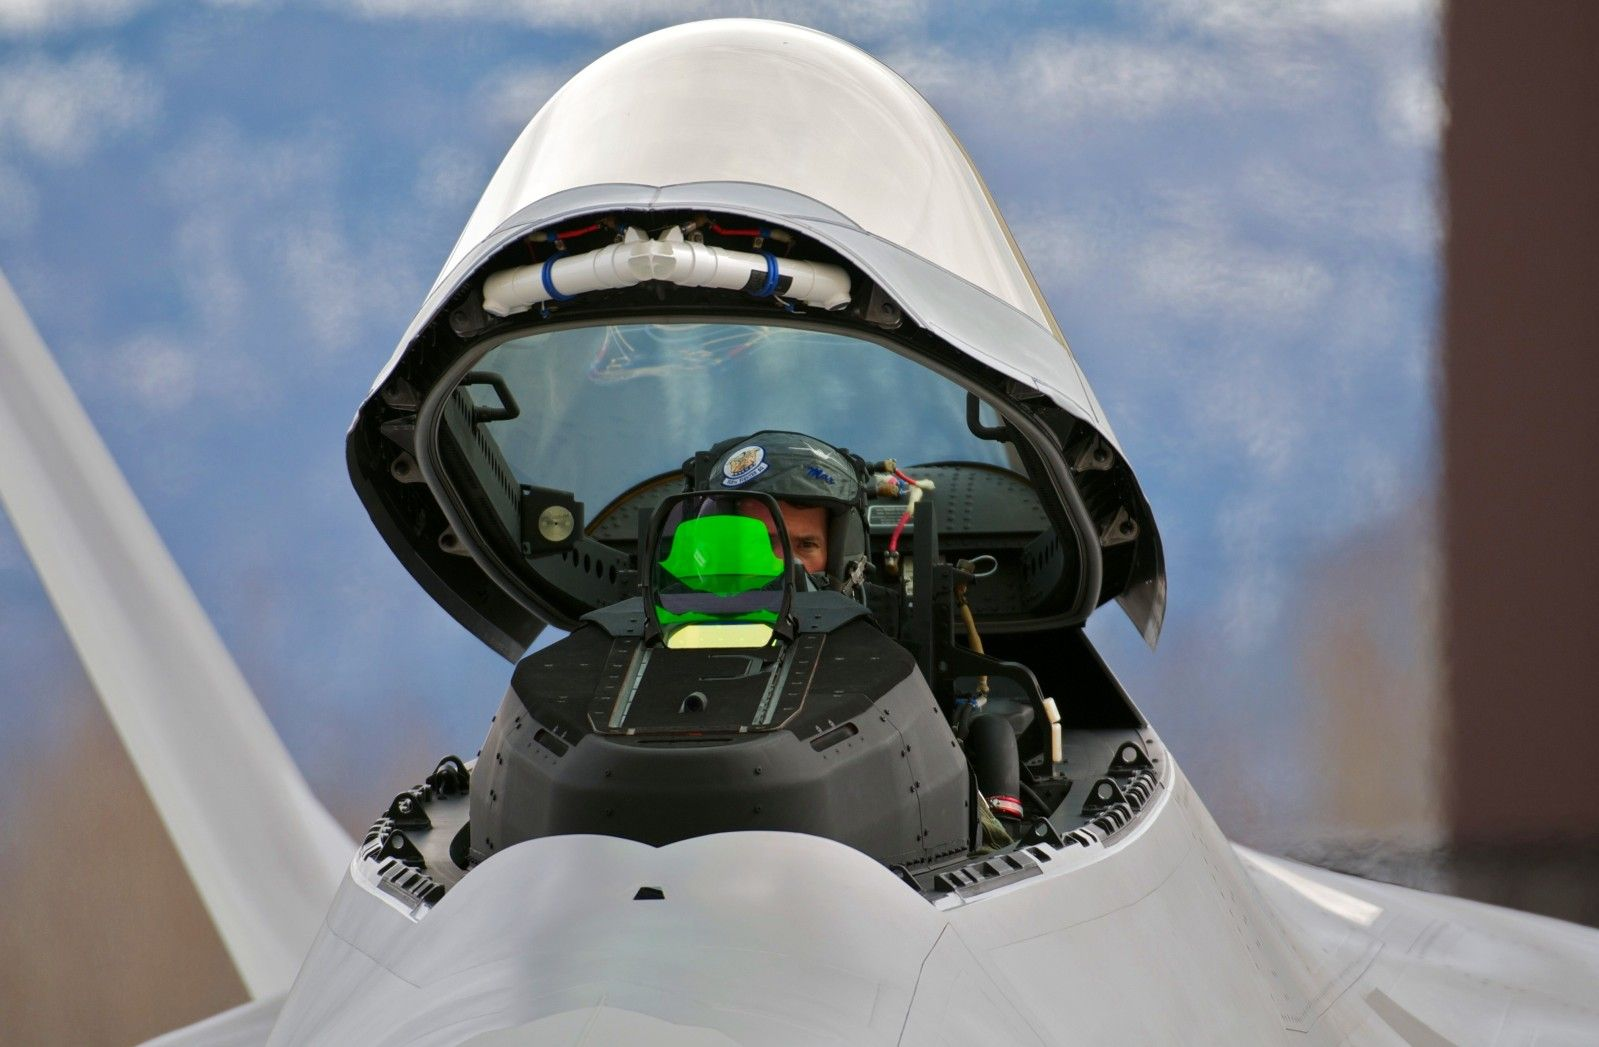 Paul Moga 525th Fighter Squadron commander raises the canopy of the Air Forceu0027s last delivered F-22 Raptor fighter May 5 at the 525th FS hangar. & Air Force Lt. Col. Paul Moga 525th Fighter Squadron commander ...